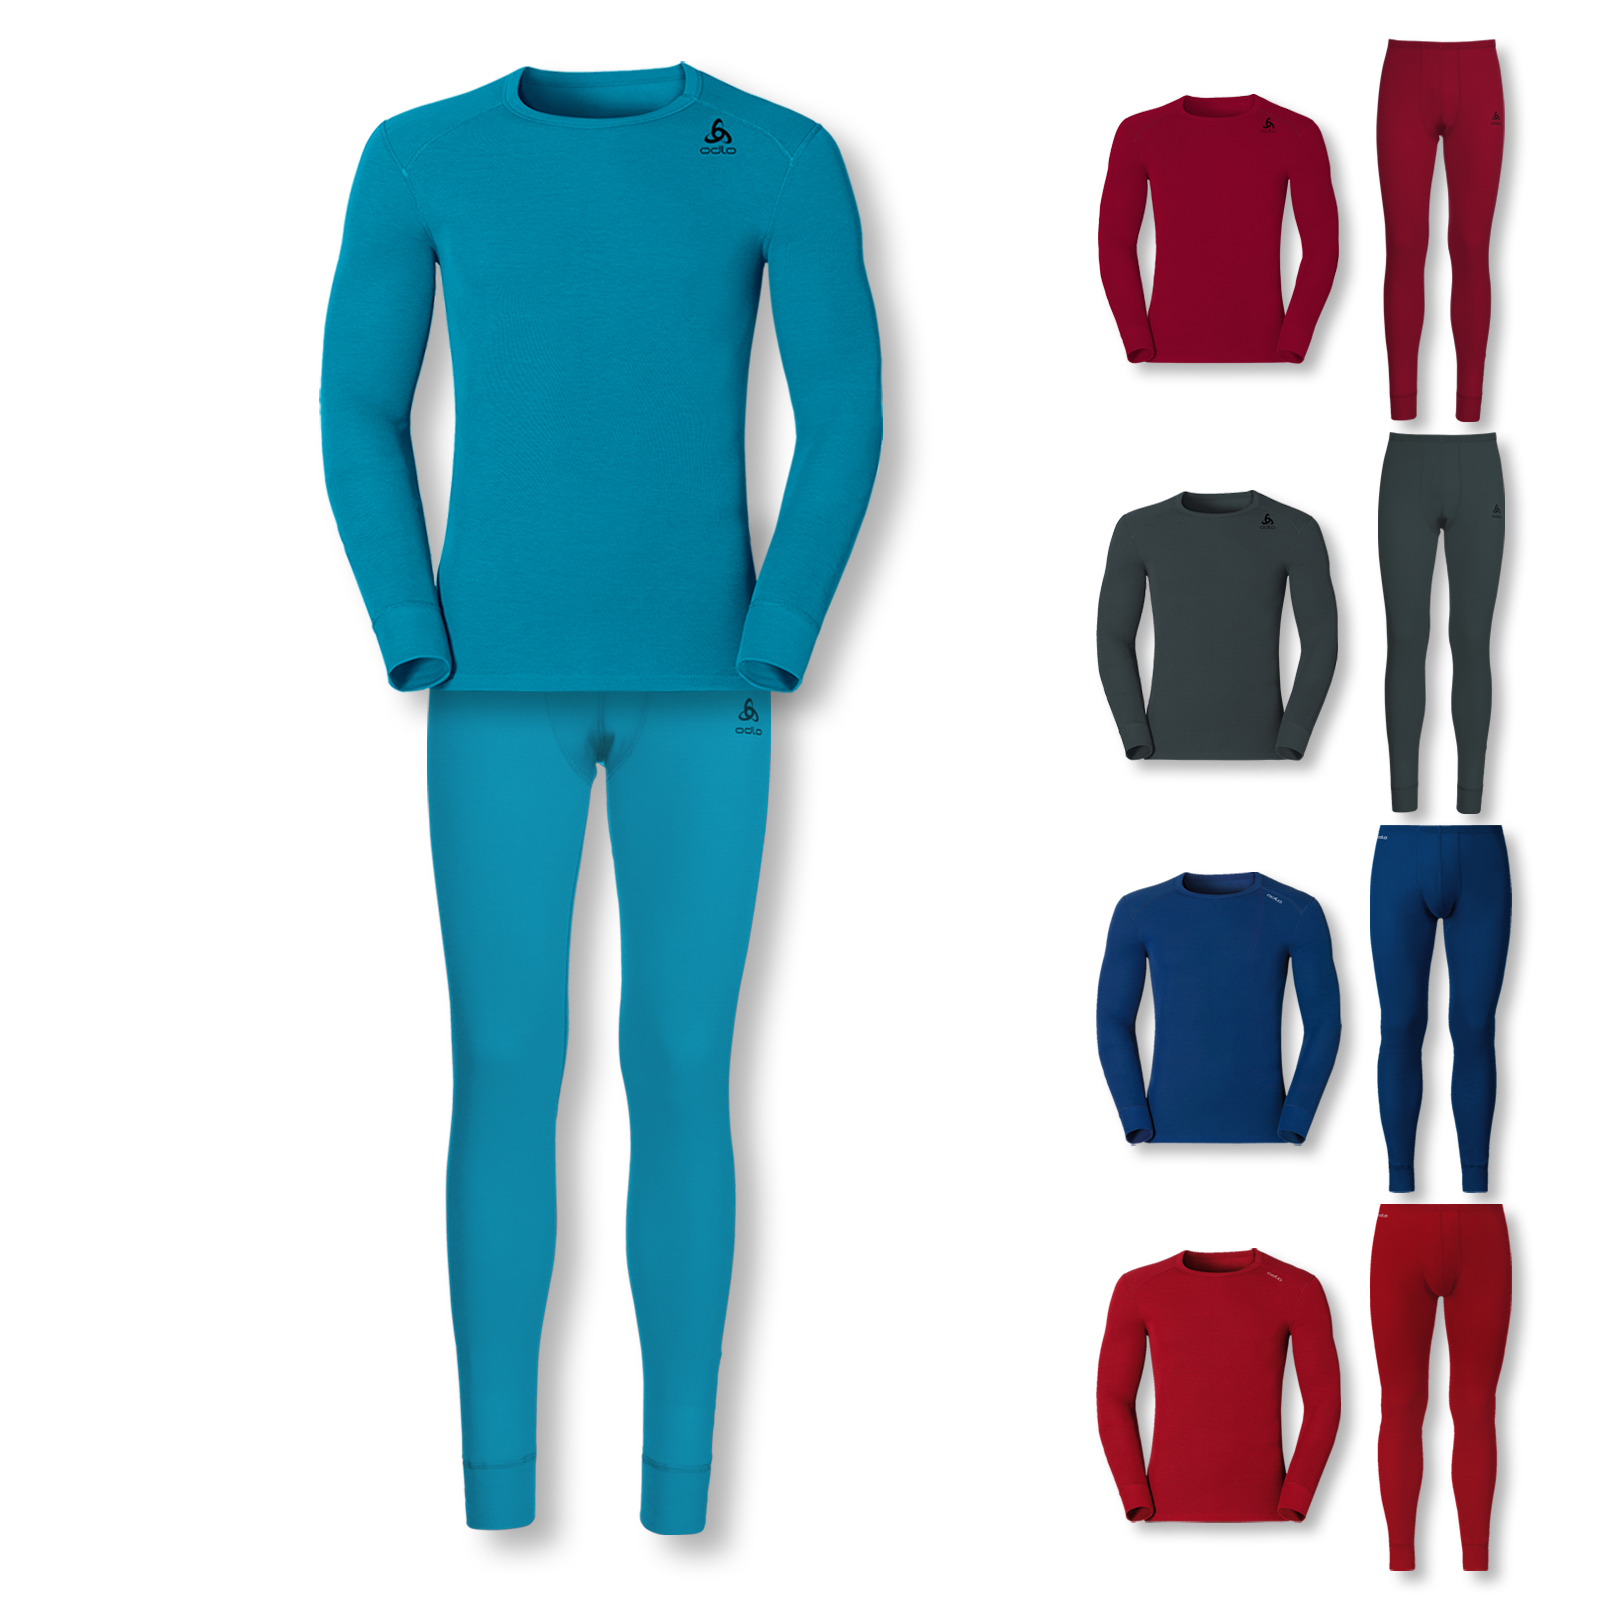 Odlo Herren Skiunterwäsche Set Thermounterwäsche WARM S M L XL XXL in blue jewel vergrößern